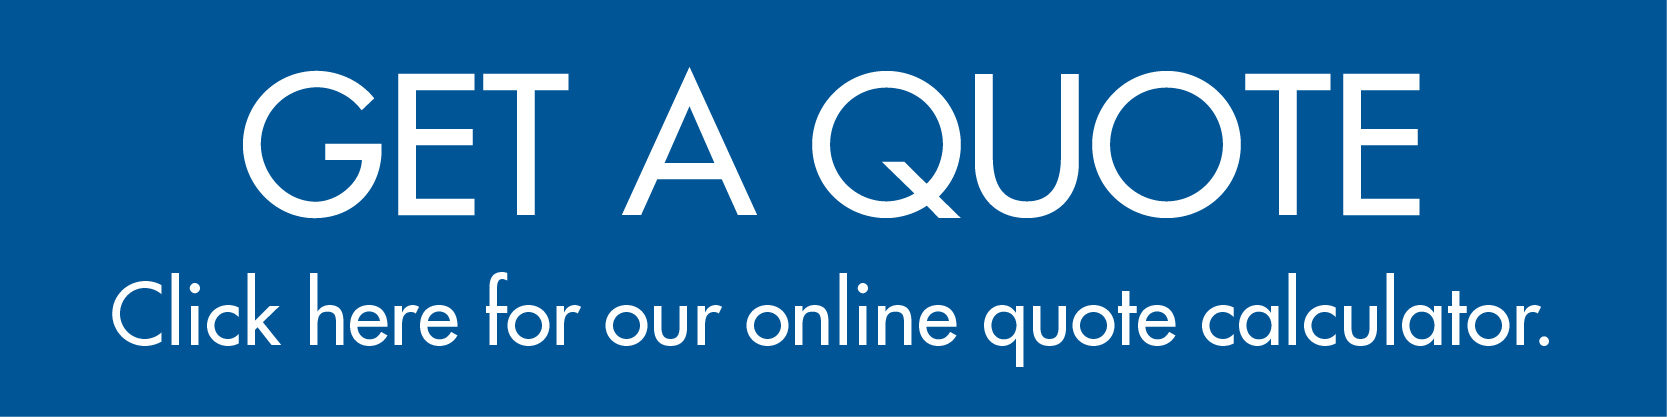 Get a quote. Click here for our online quote calculator.